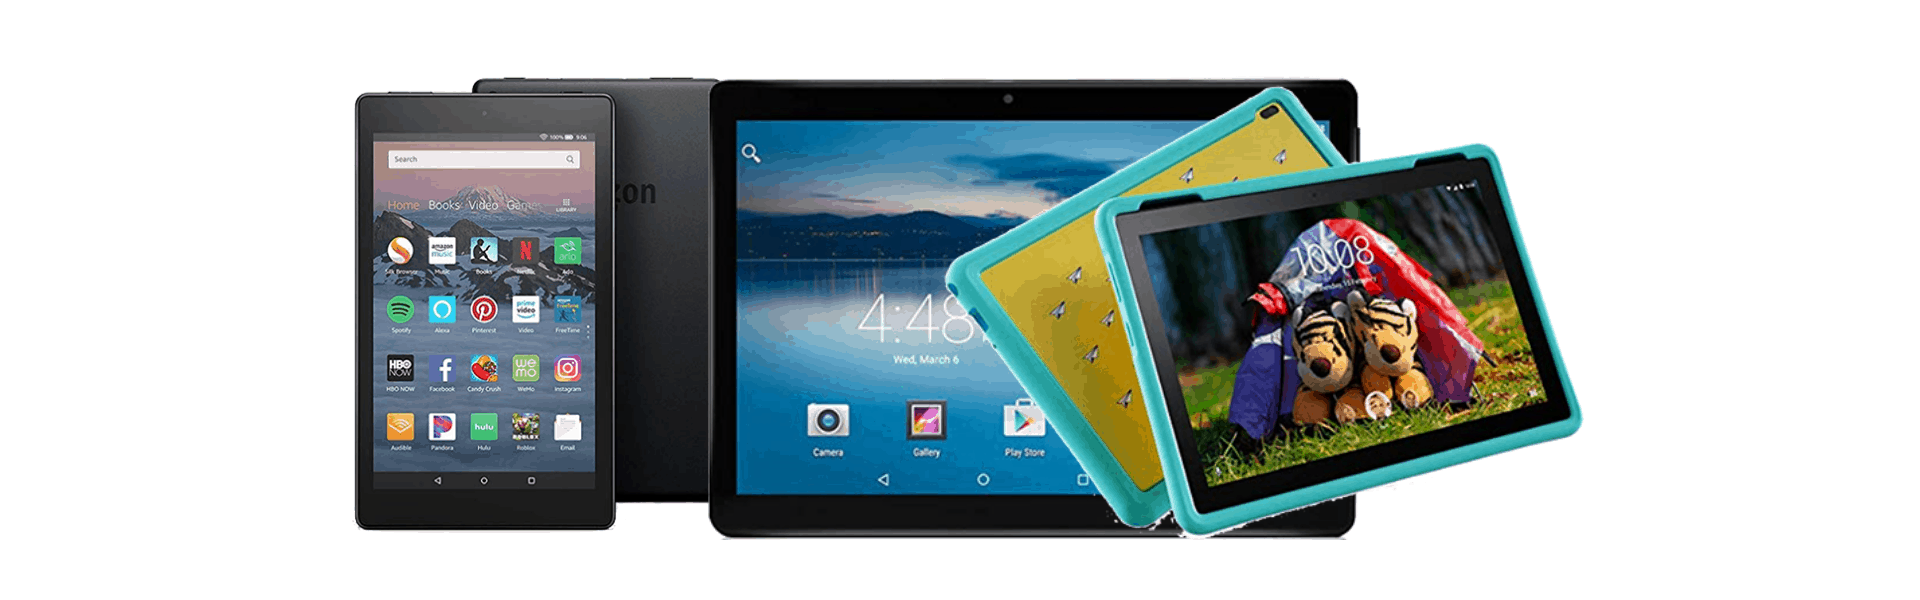 best tablet for college students on a budget